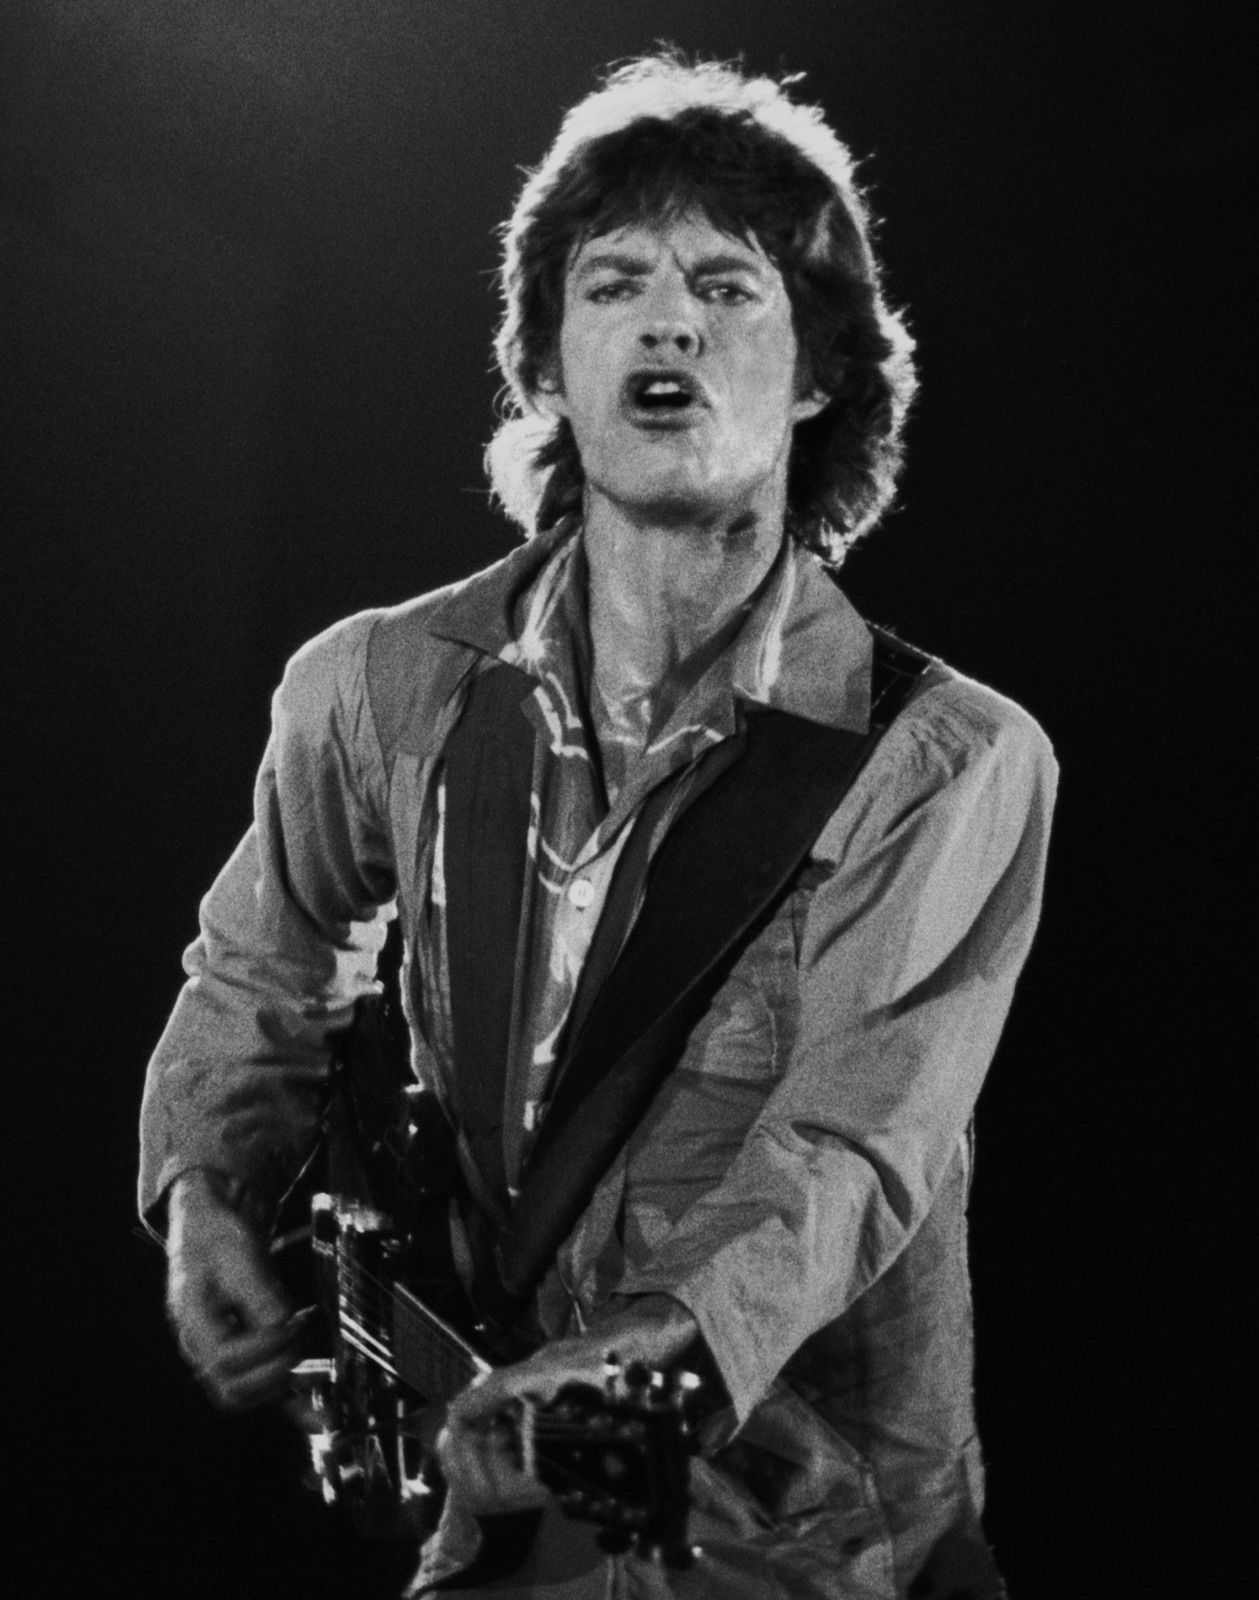 Mick Jagger, The Rolling Stones (Torino, 1982)